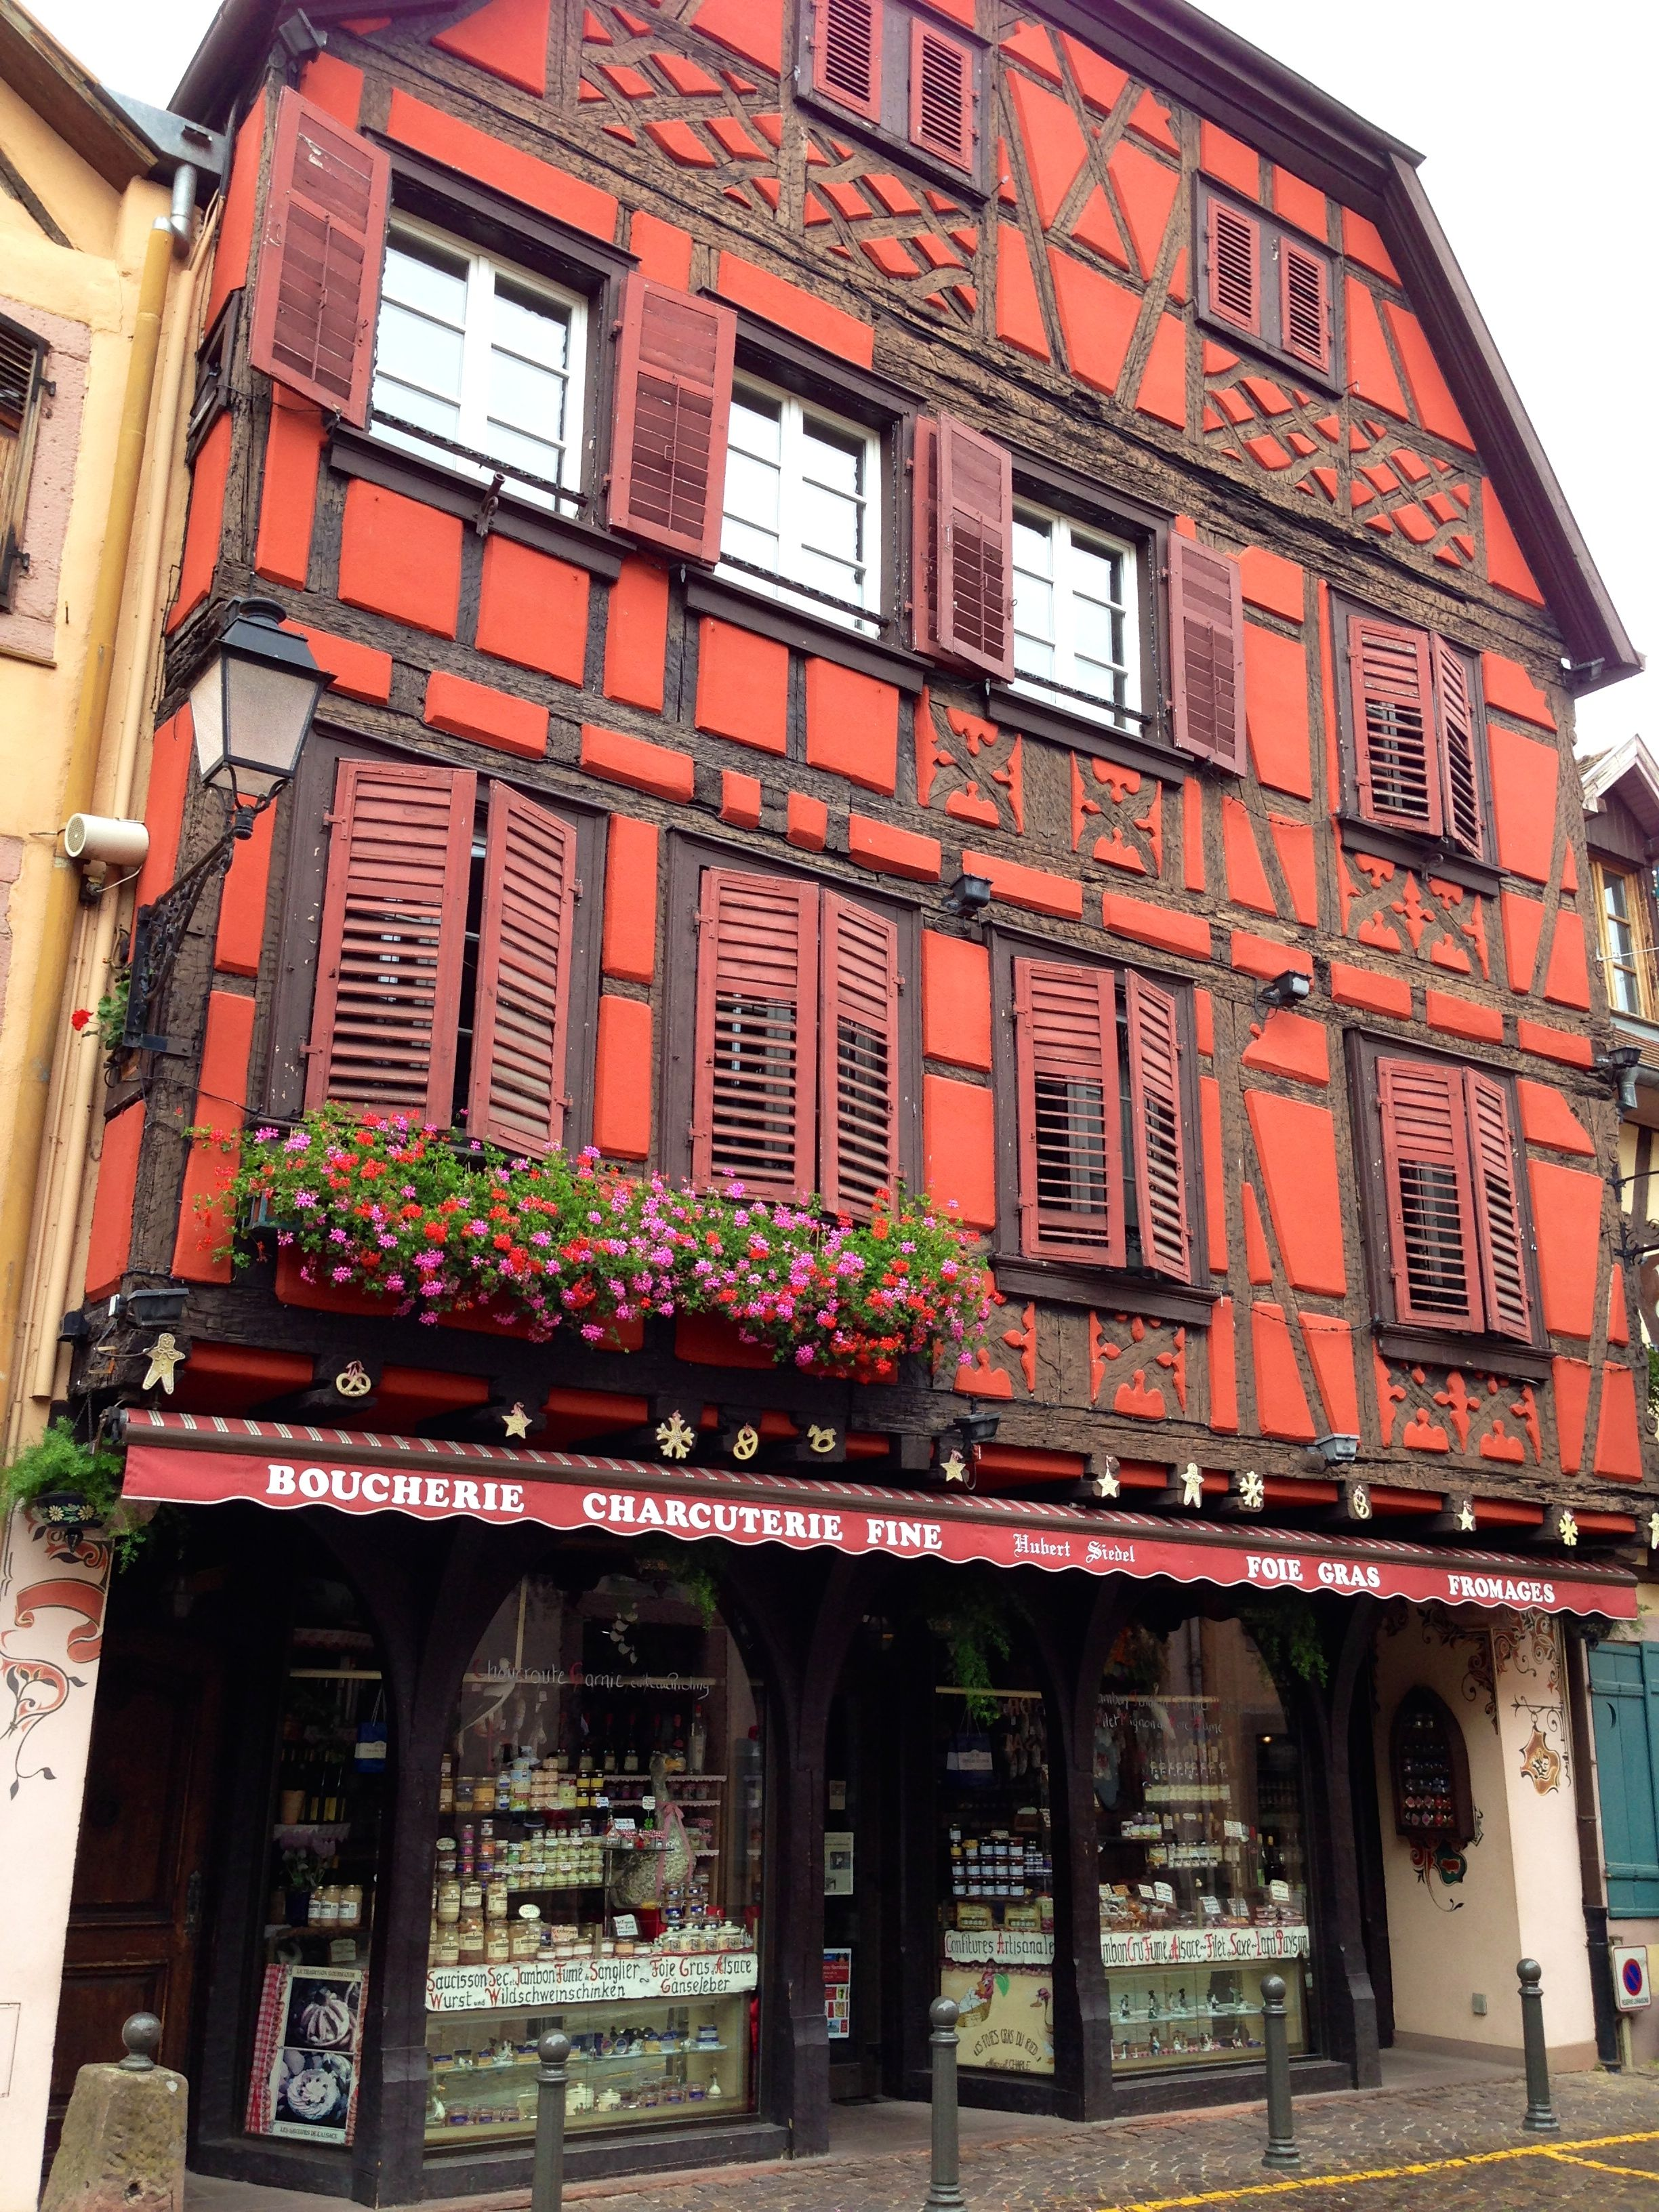 1/2 timbered house in Ribeauvillé, France